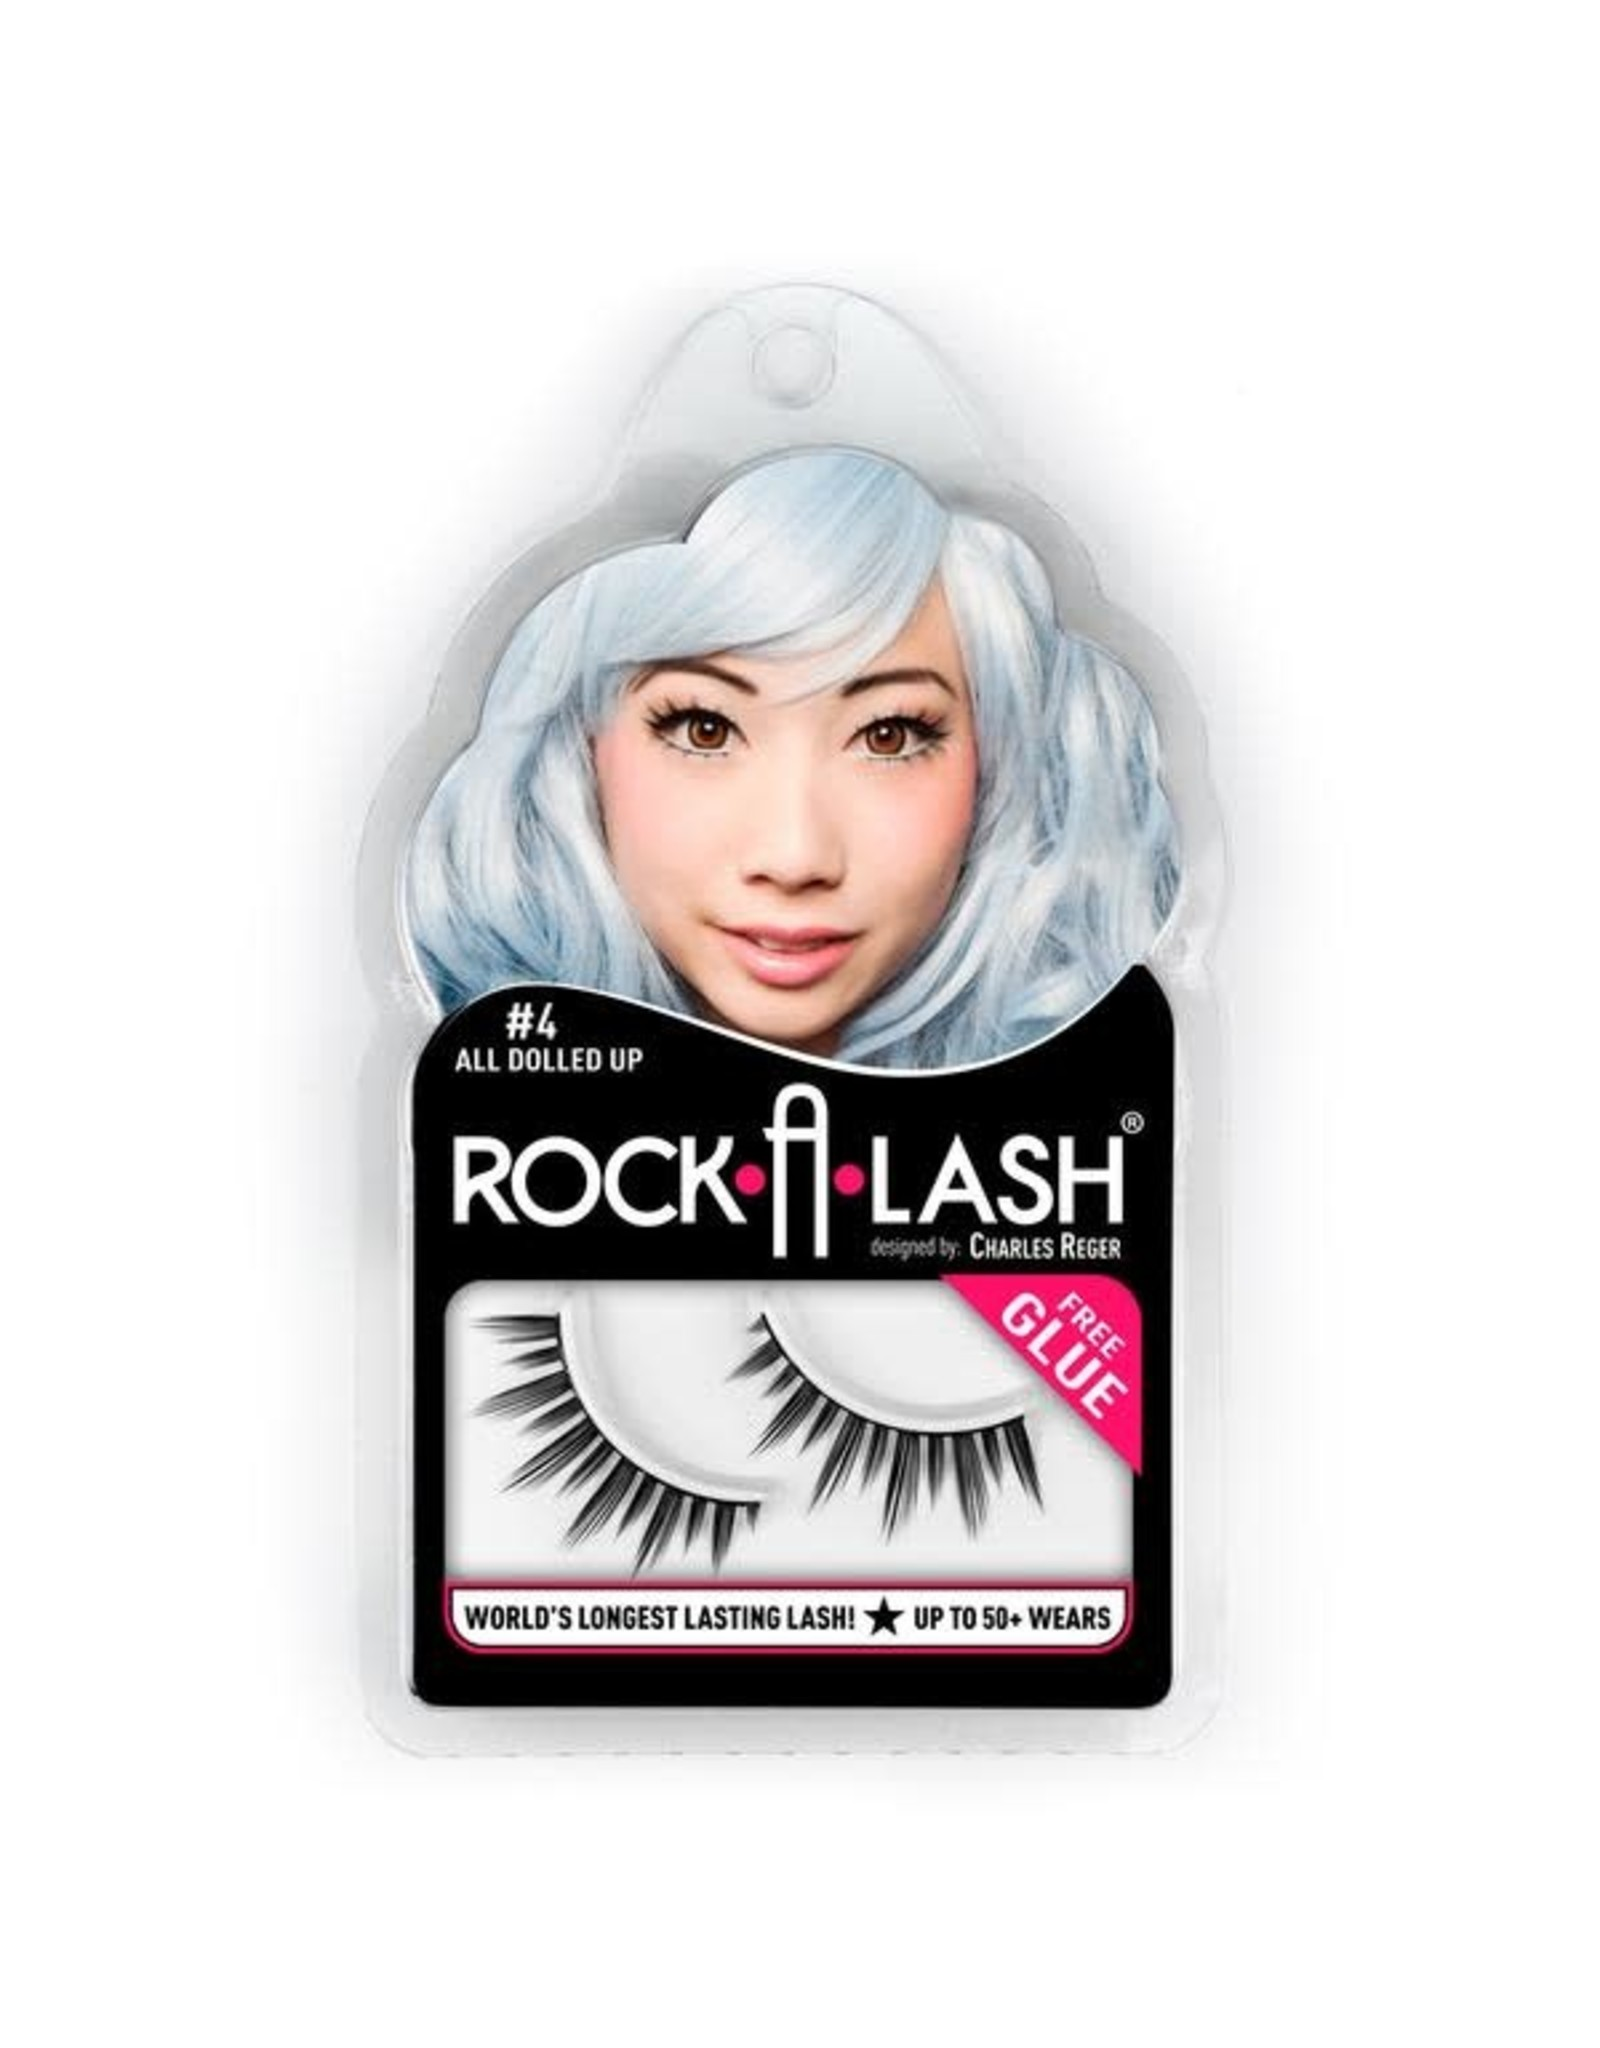 ROCK-A-LASH - ALL DOLLED UP BLACK LASH